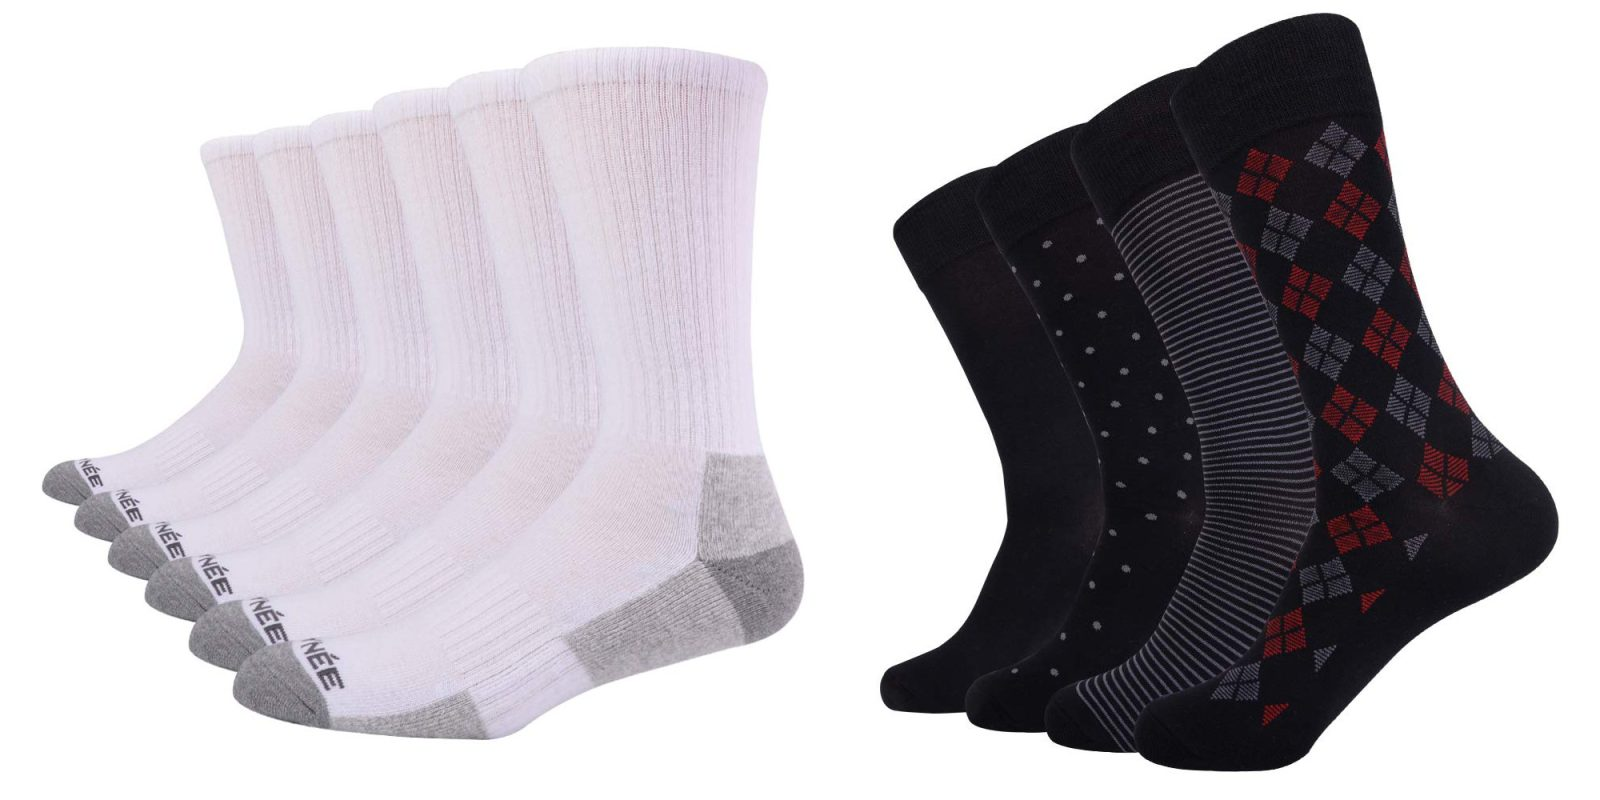 Get rid of those old socks, Amazon has various bundles from $8 today